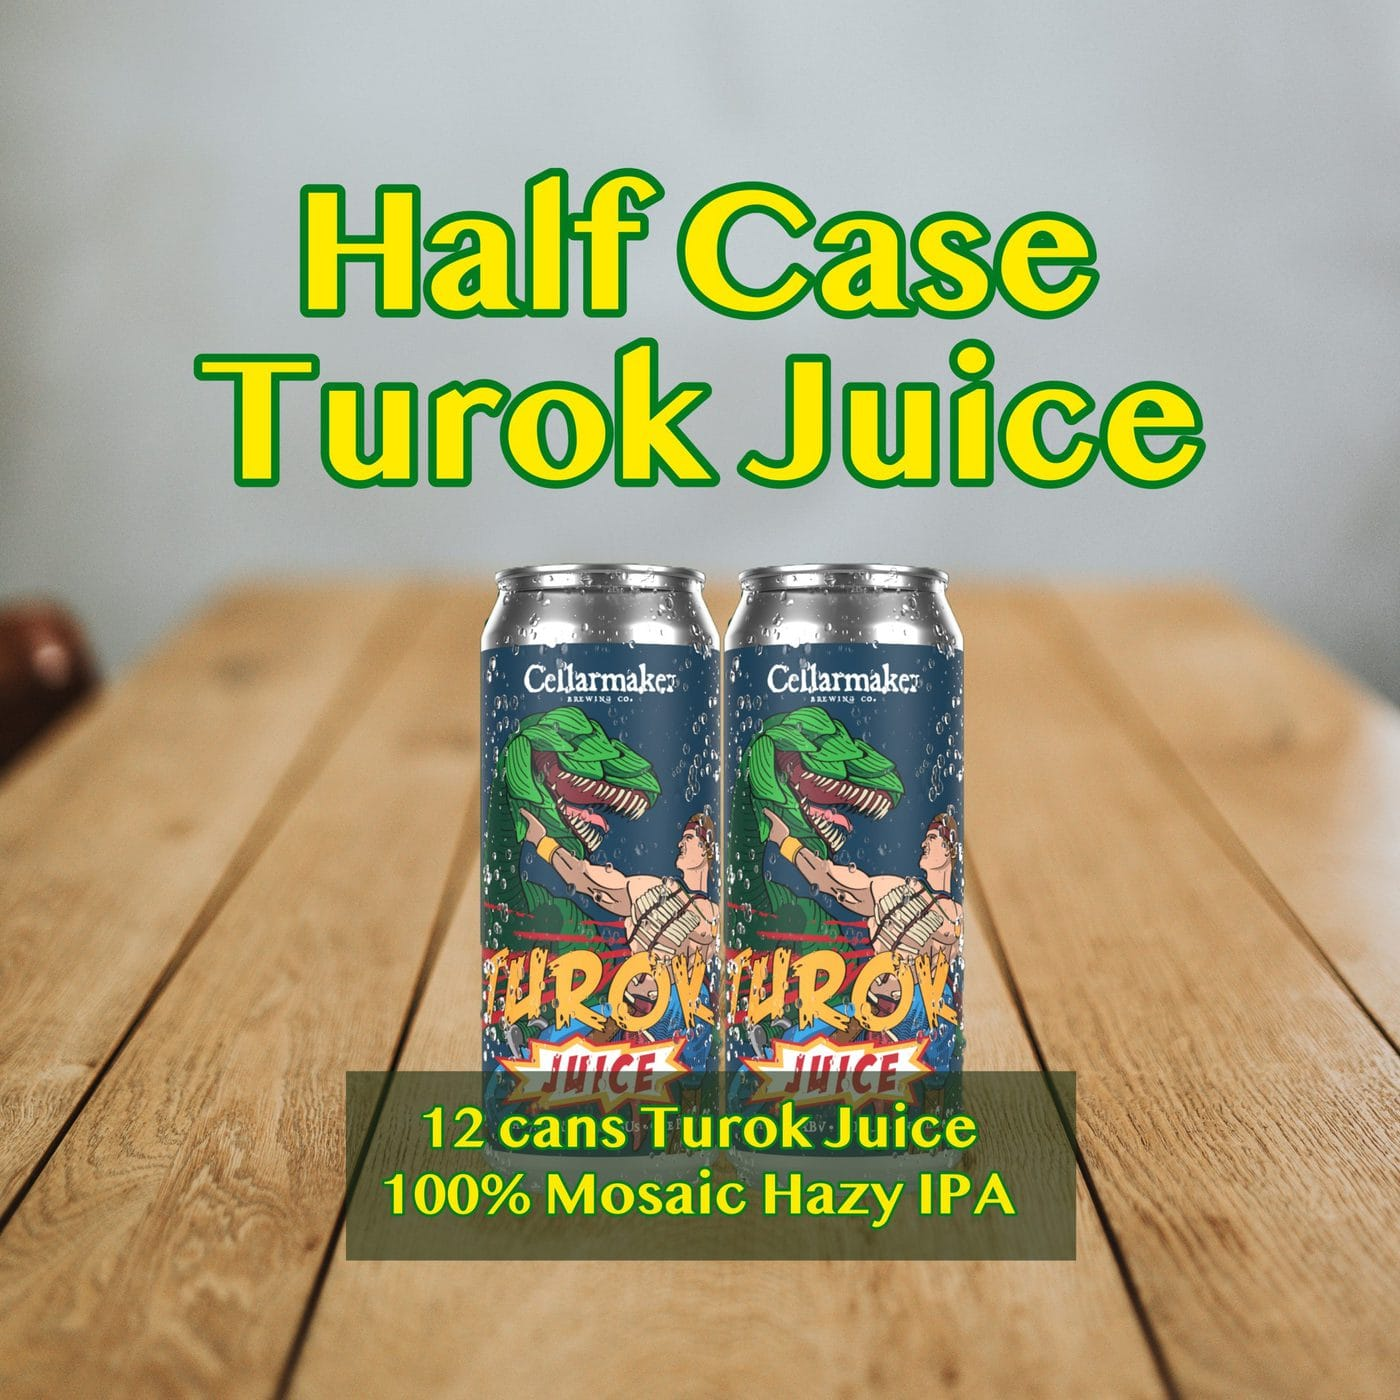 HALF CASE 12 CANS Turok Juice Hazy IPA – Shipping Out Tuesday 3/2 For Next Day Delivery*